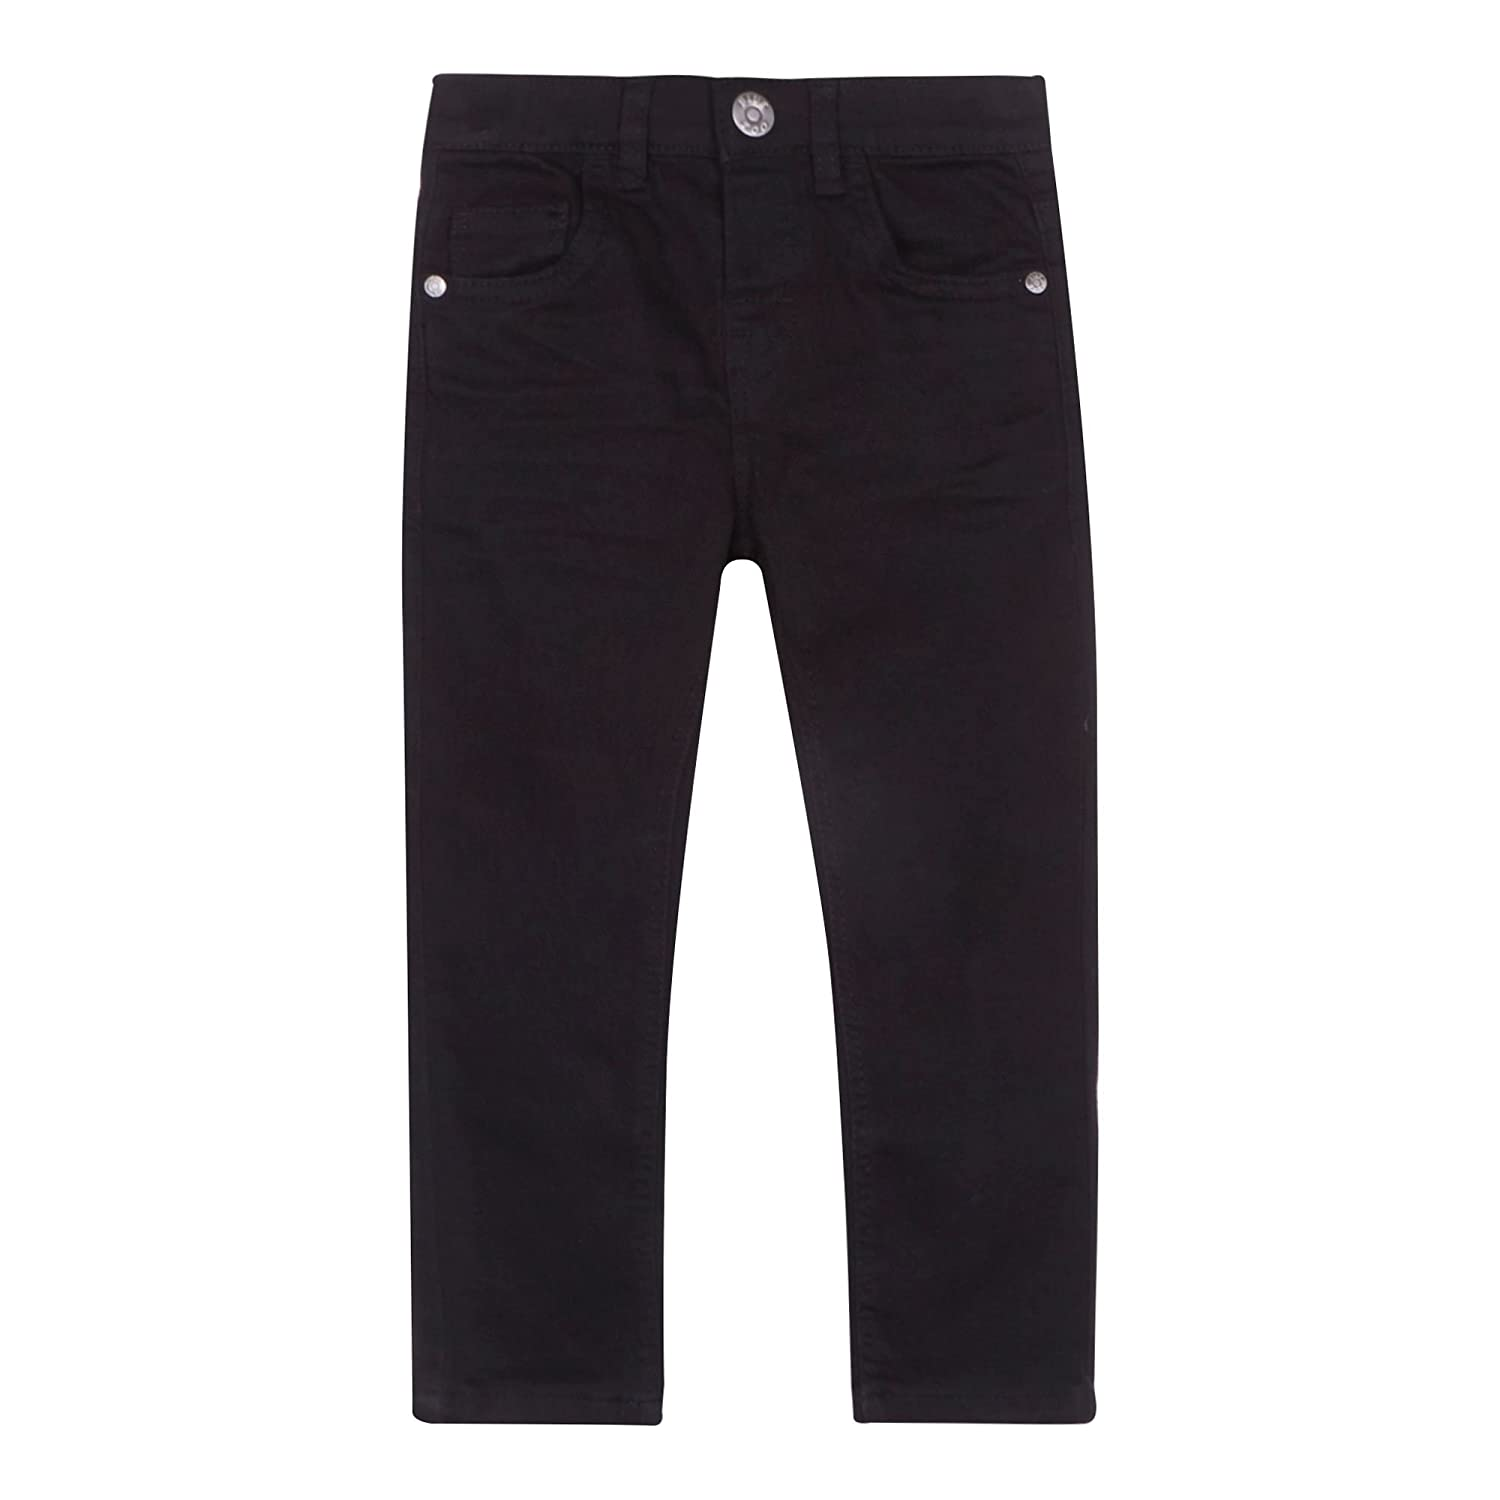 bluezoo Kids 'Boys' Black Slim Fit Jeans